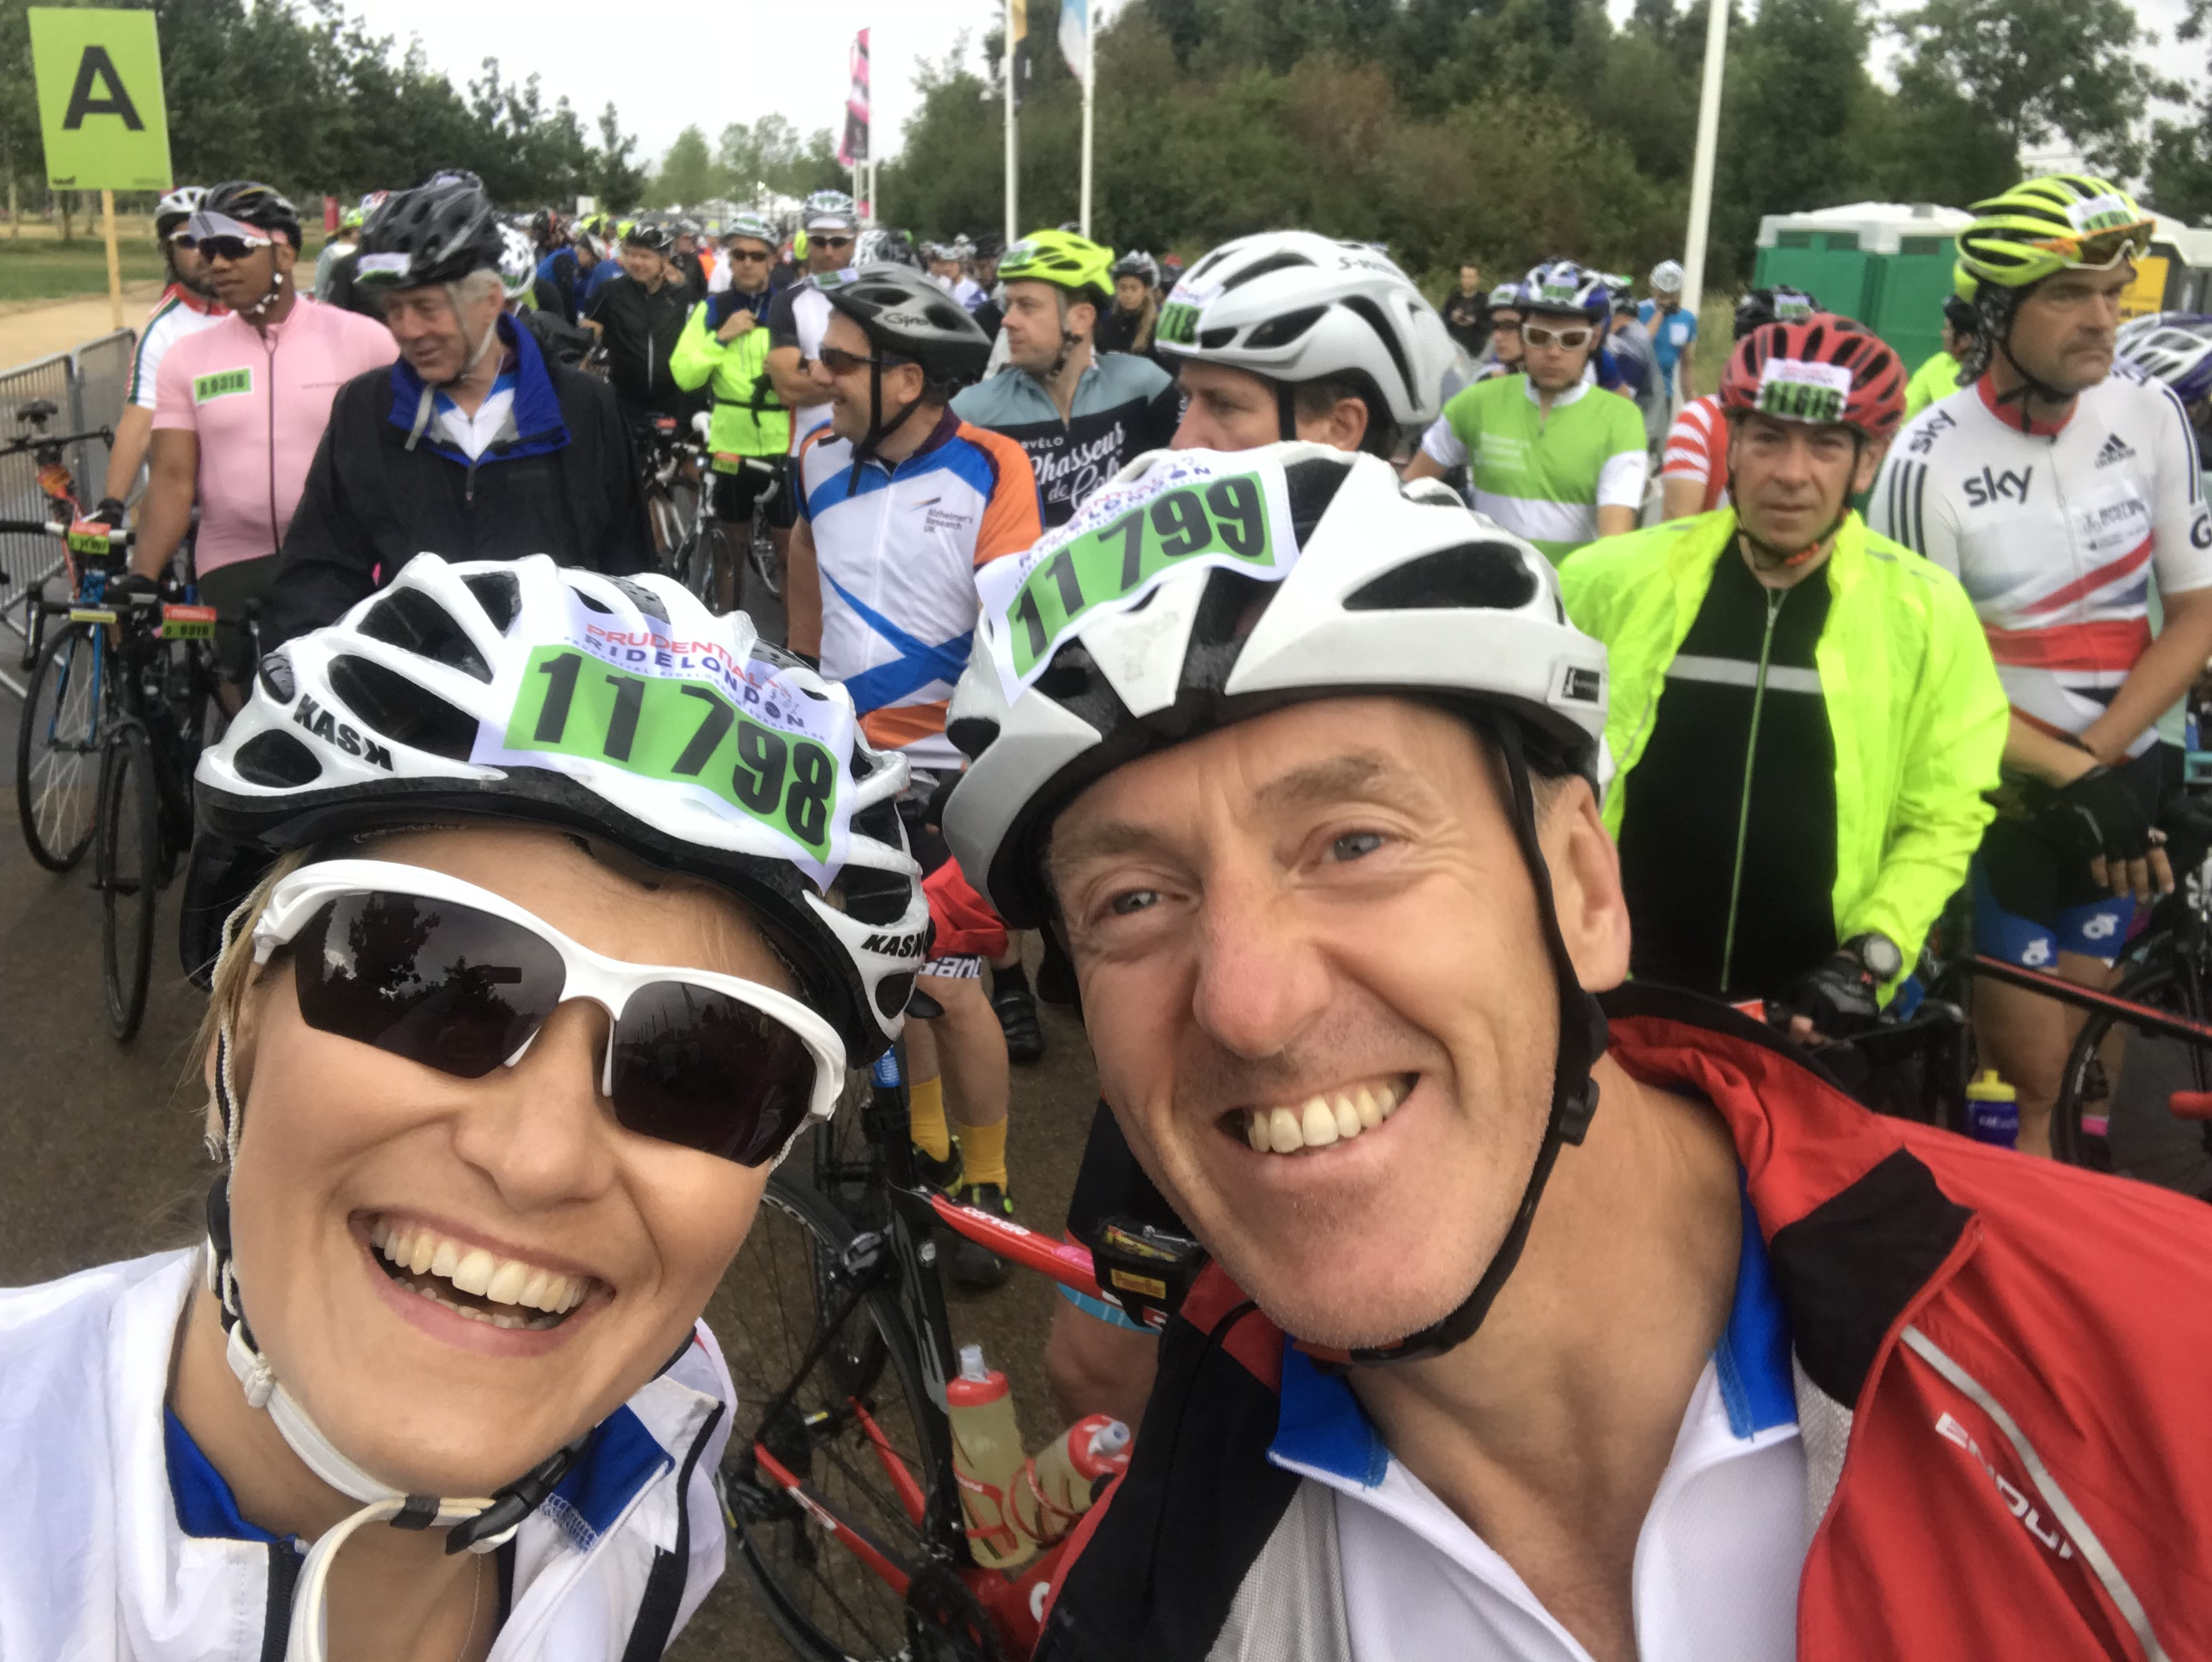 Claire Kremer and Paul Parrish at the start of Ride100